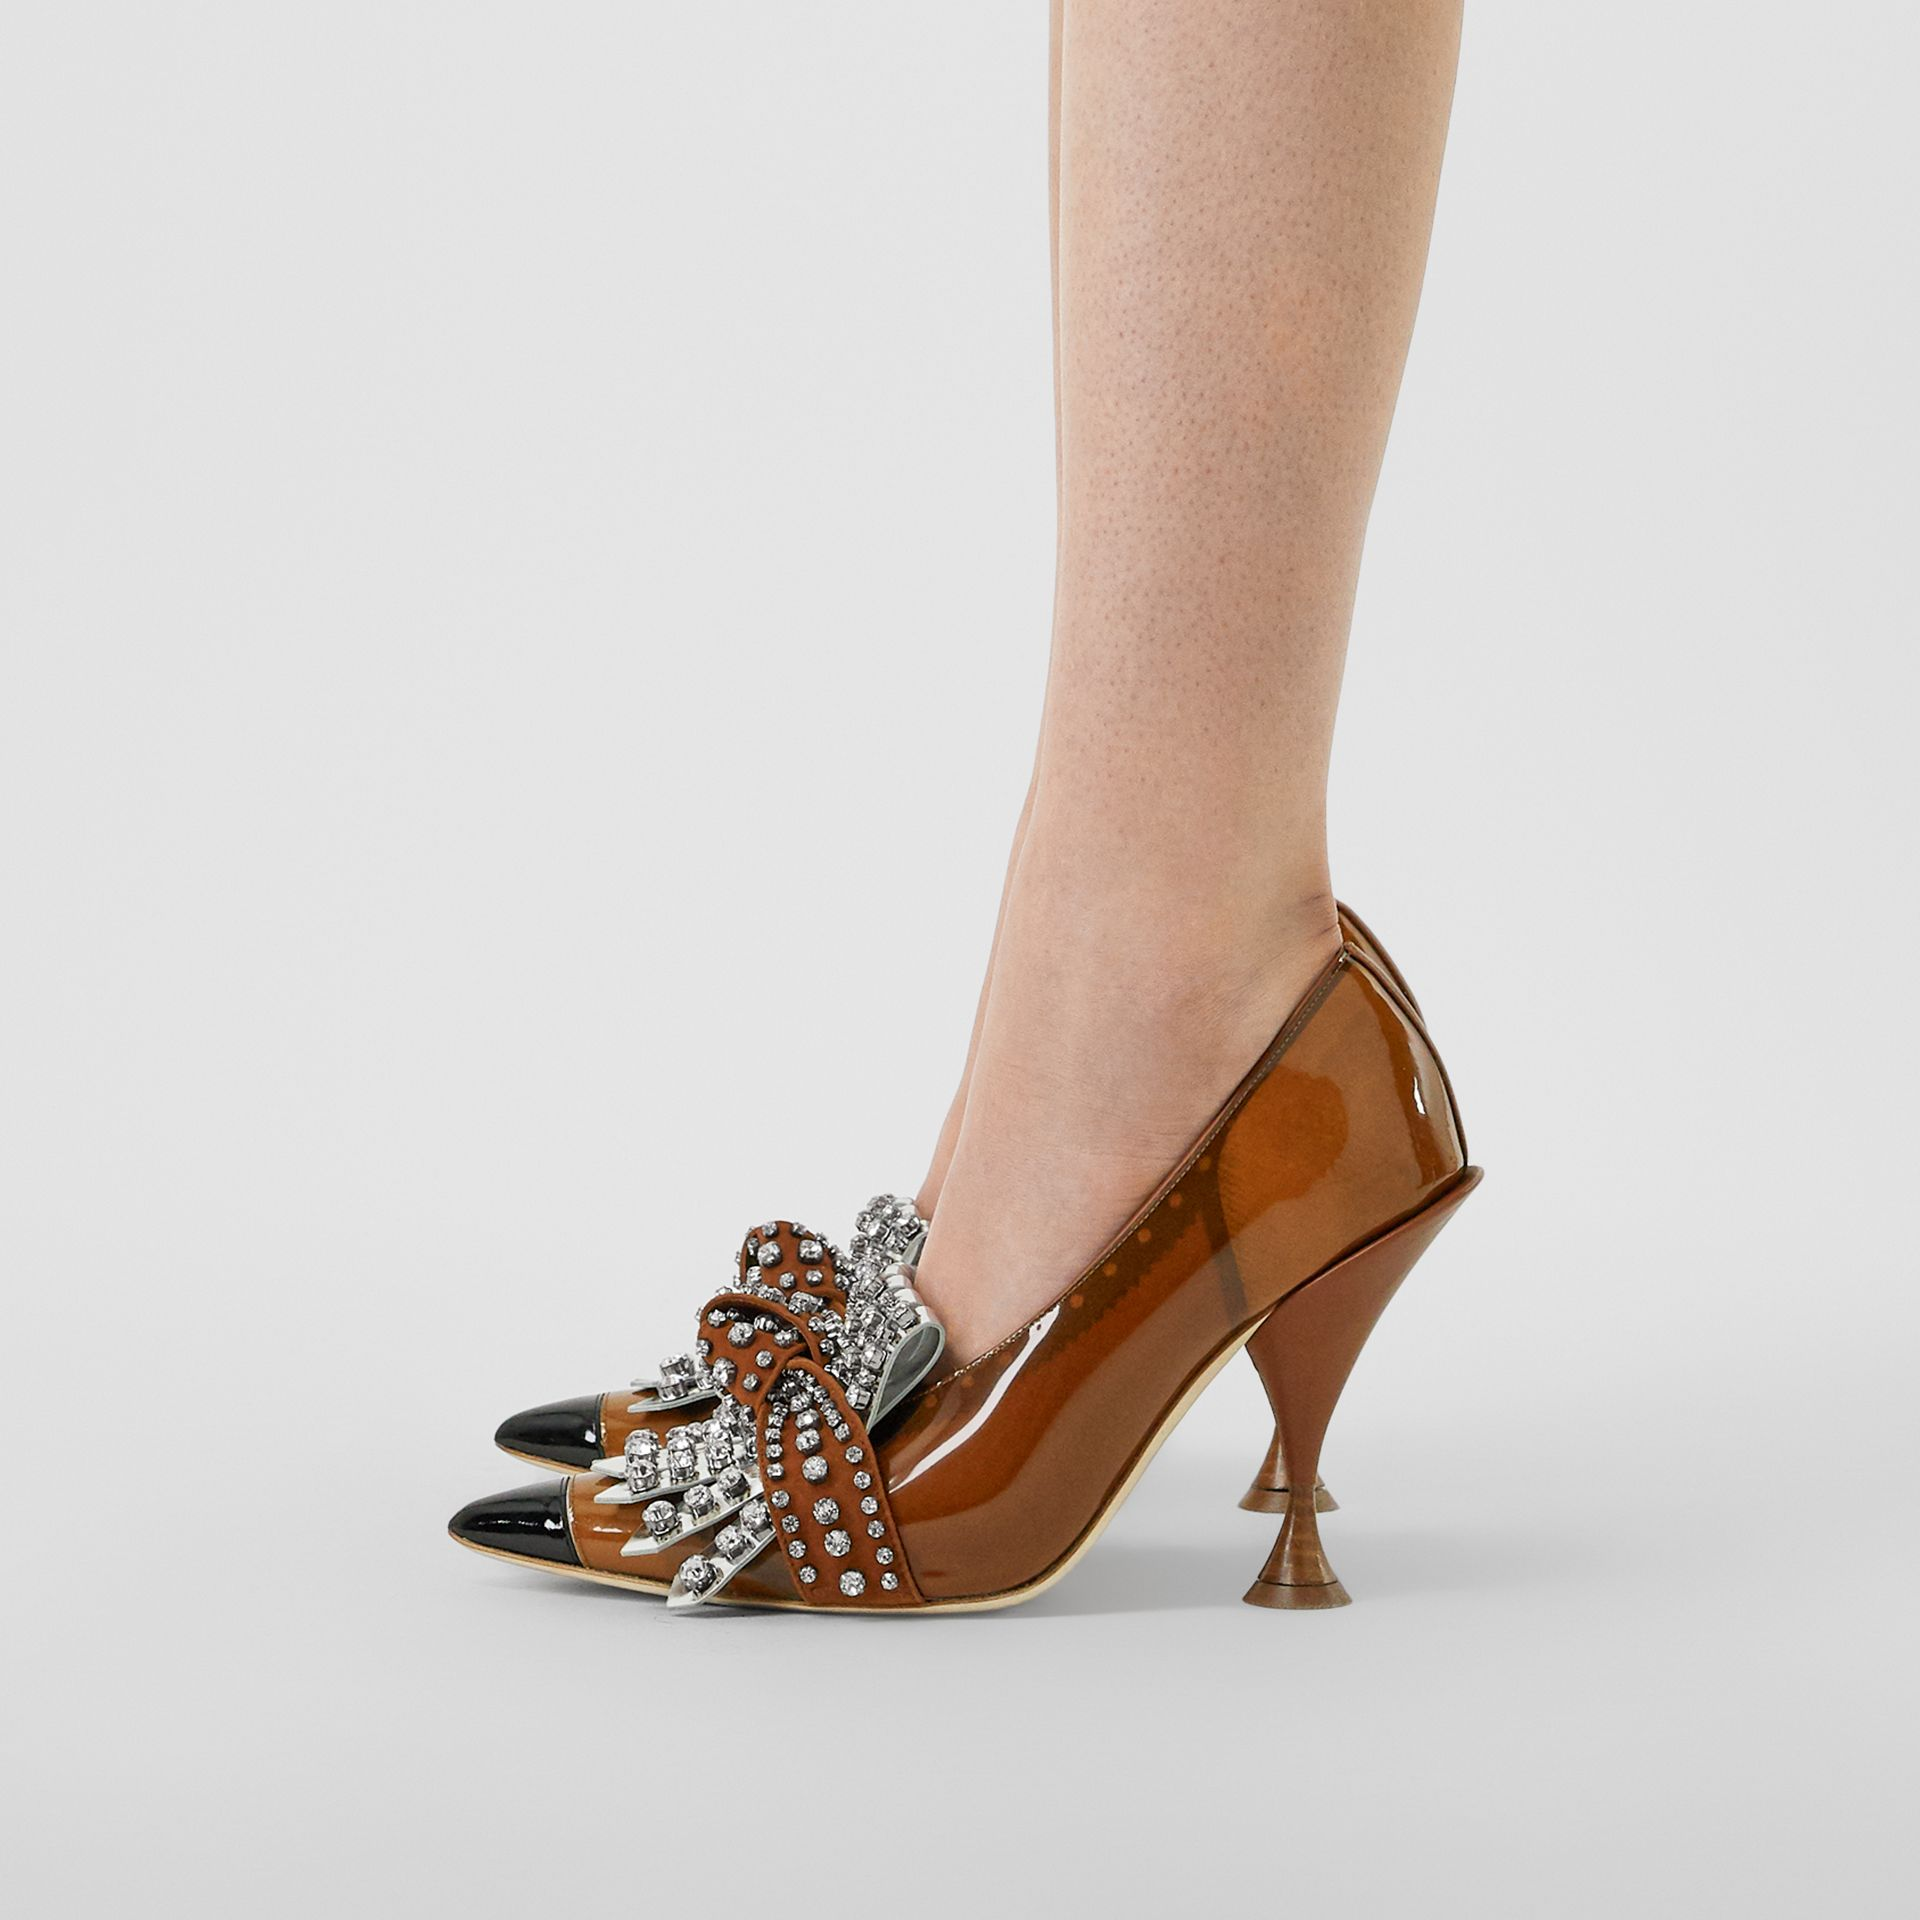 Crystal Kiltie Fringe Vinyl and Leather Point-toe Pumps in Malt Brown/black - Women | Burberry United States - gallery image 2